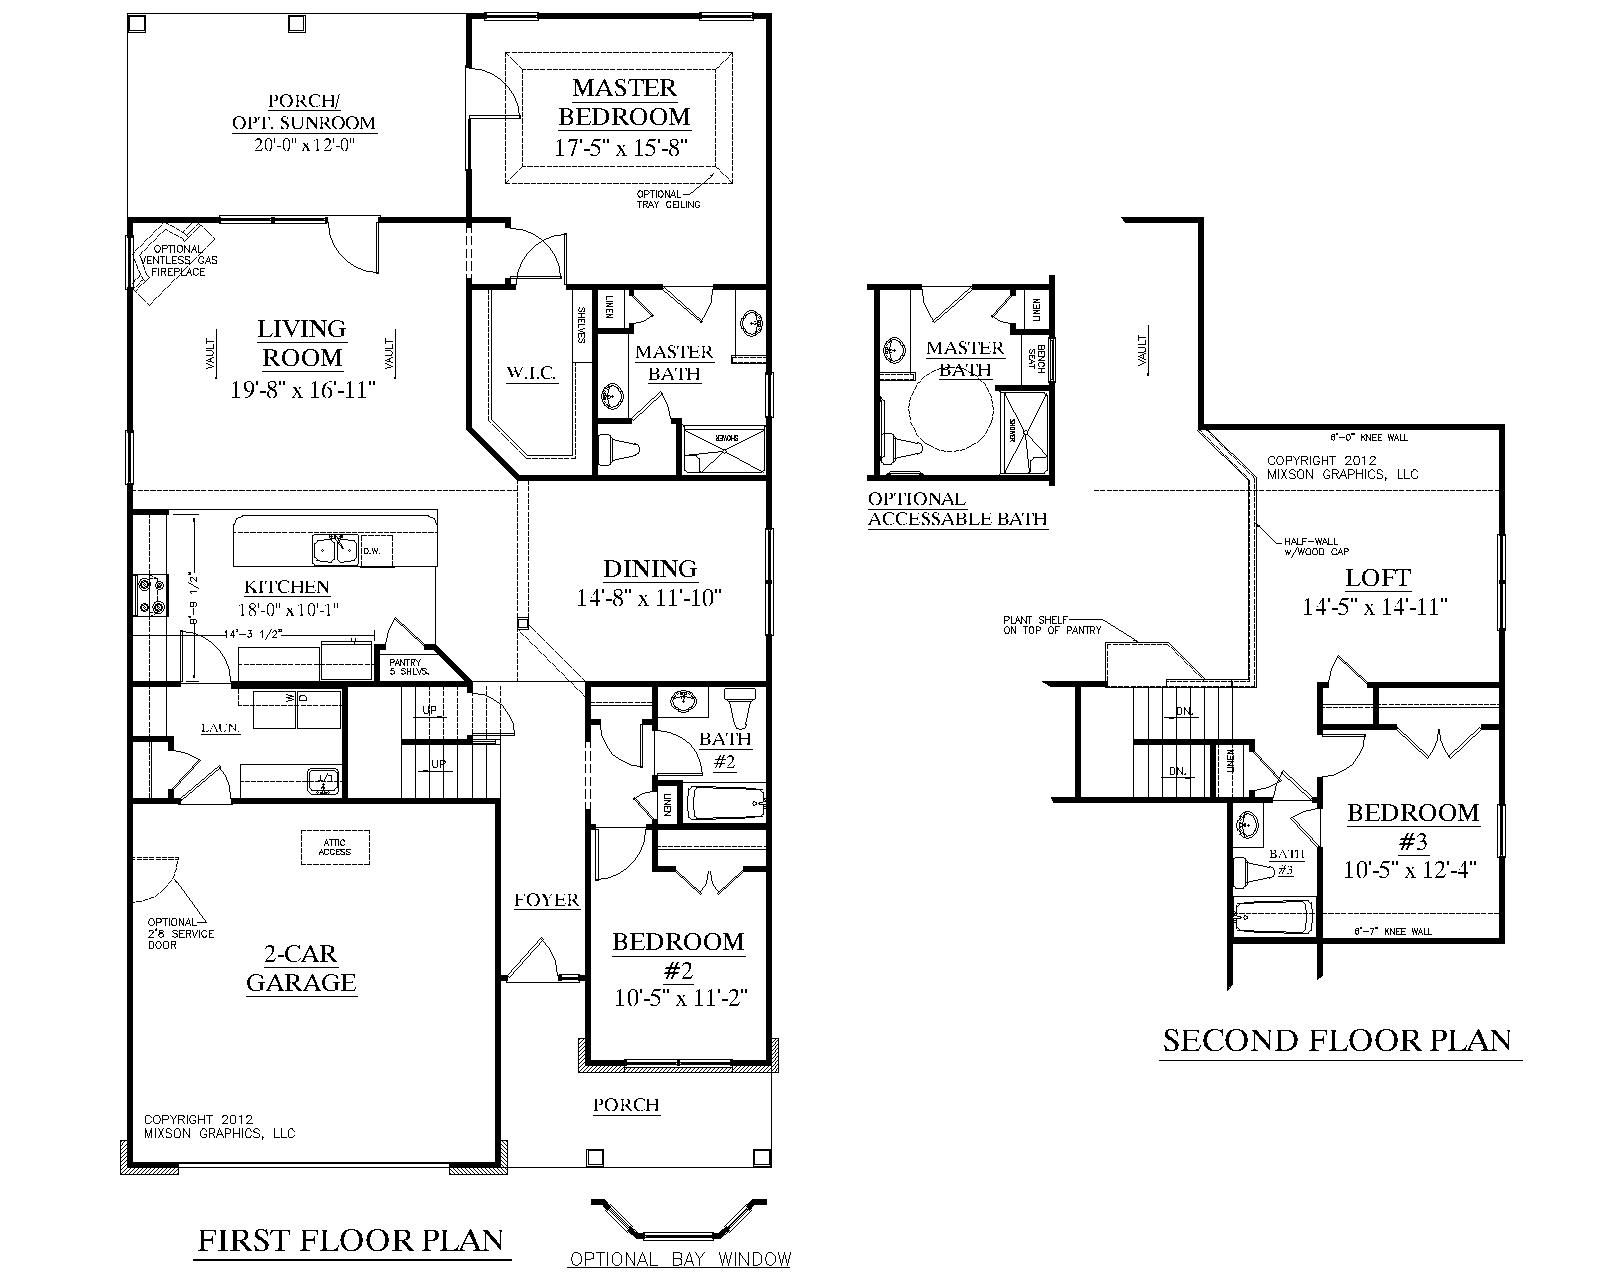 House plan 2224 kingstree floor plan traditional 1 1 2 for Master bedroom with sitting room floor plans